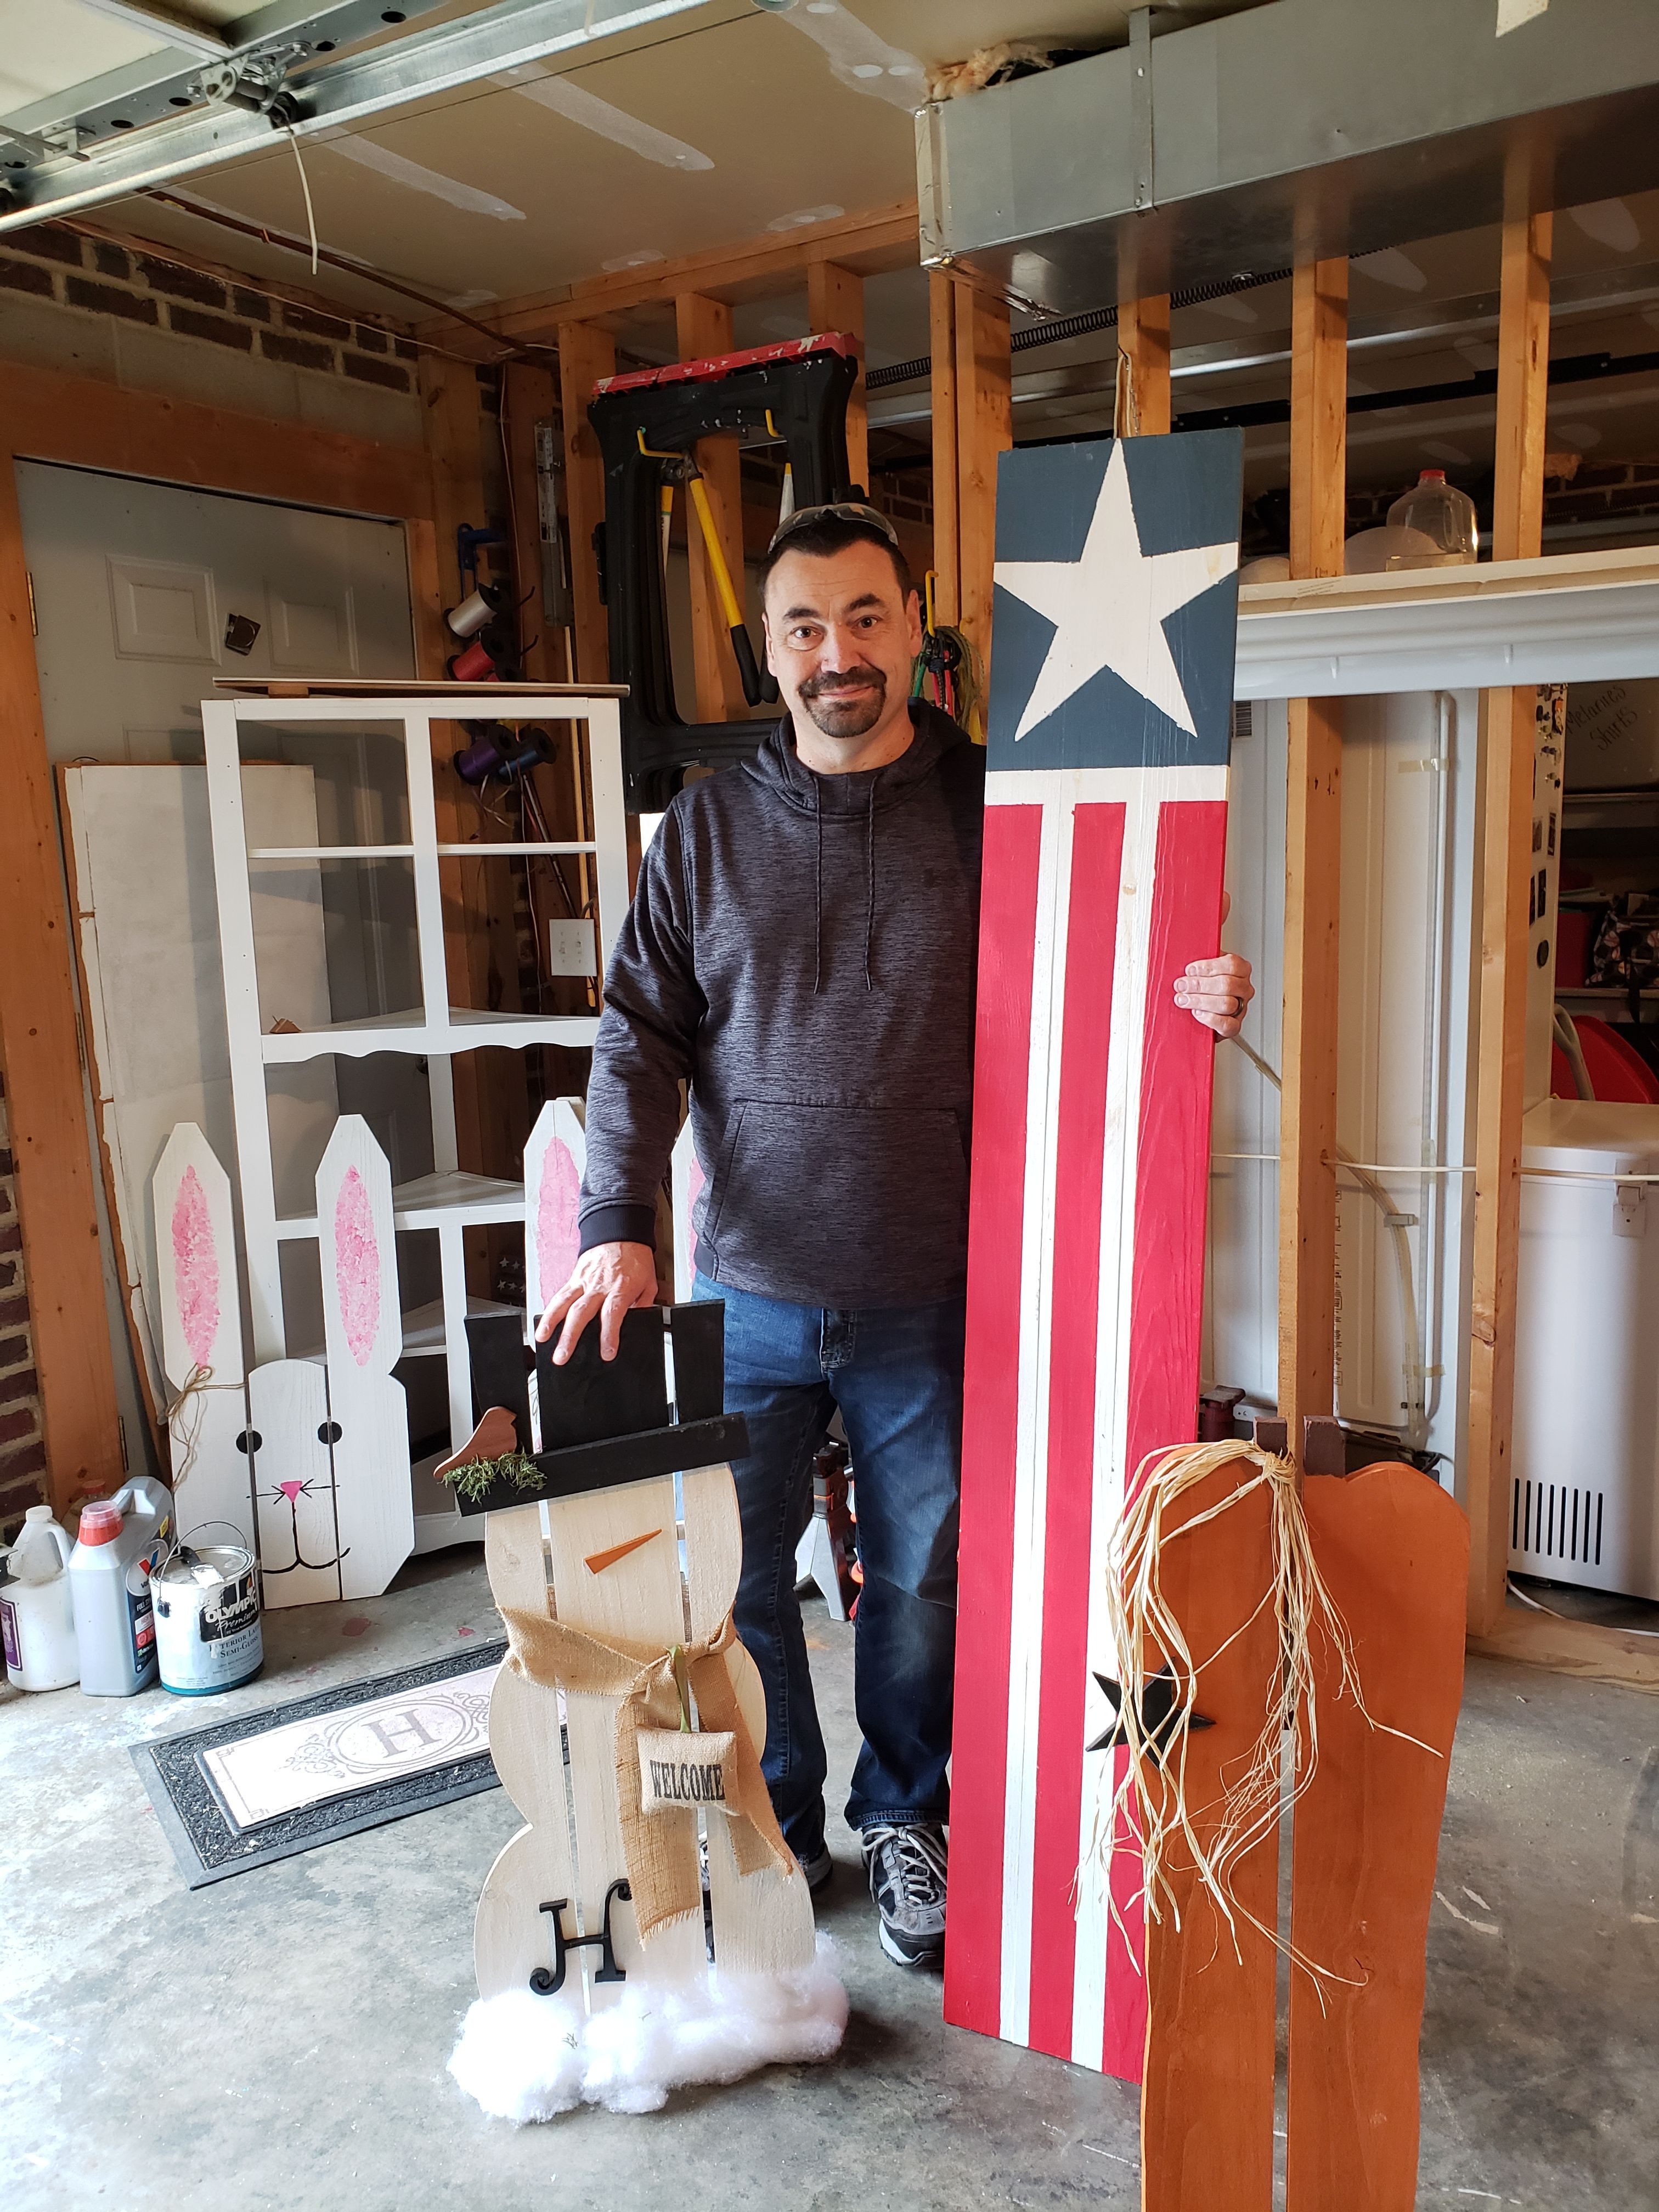 John Hepler with a few of his woodworking projects.